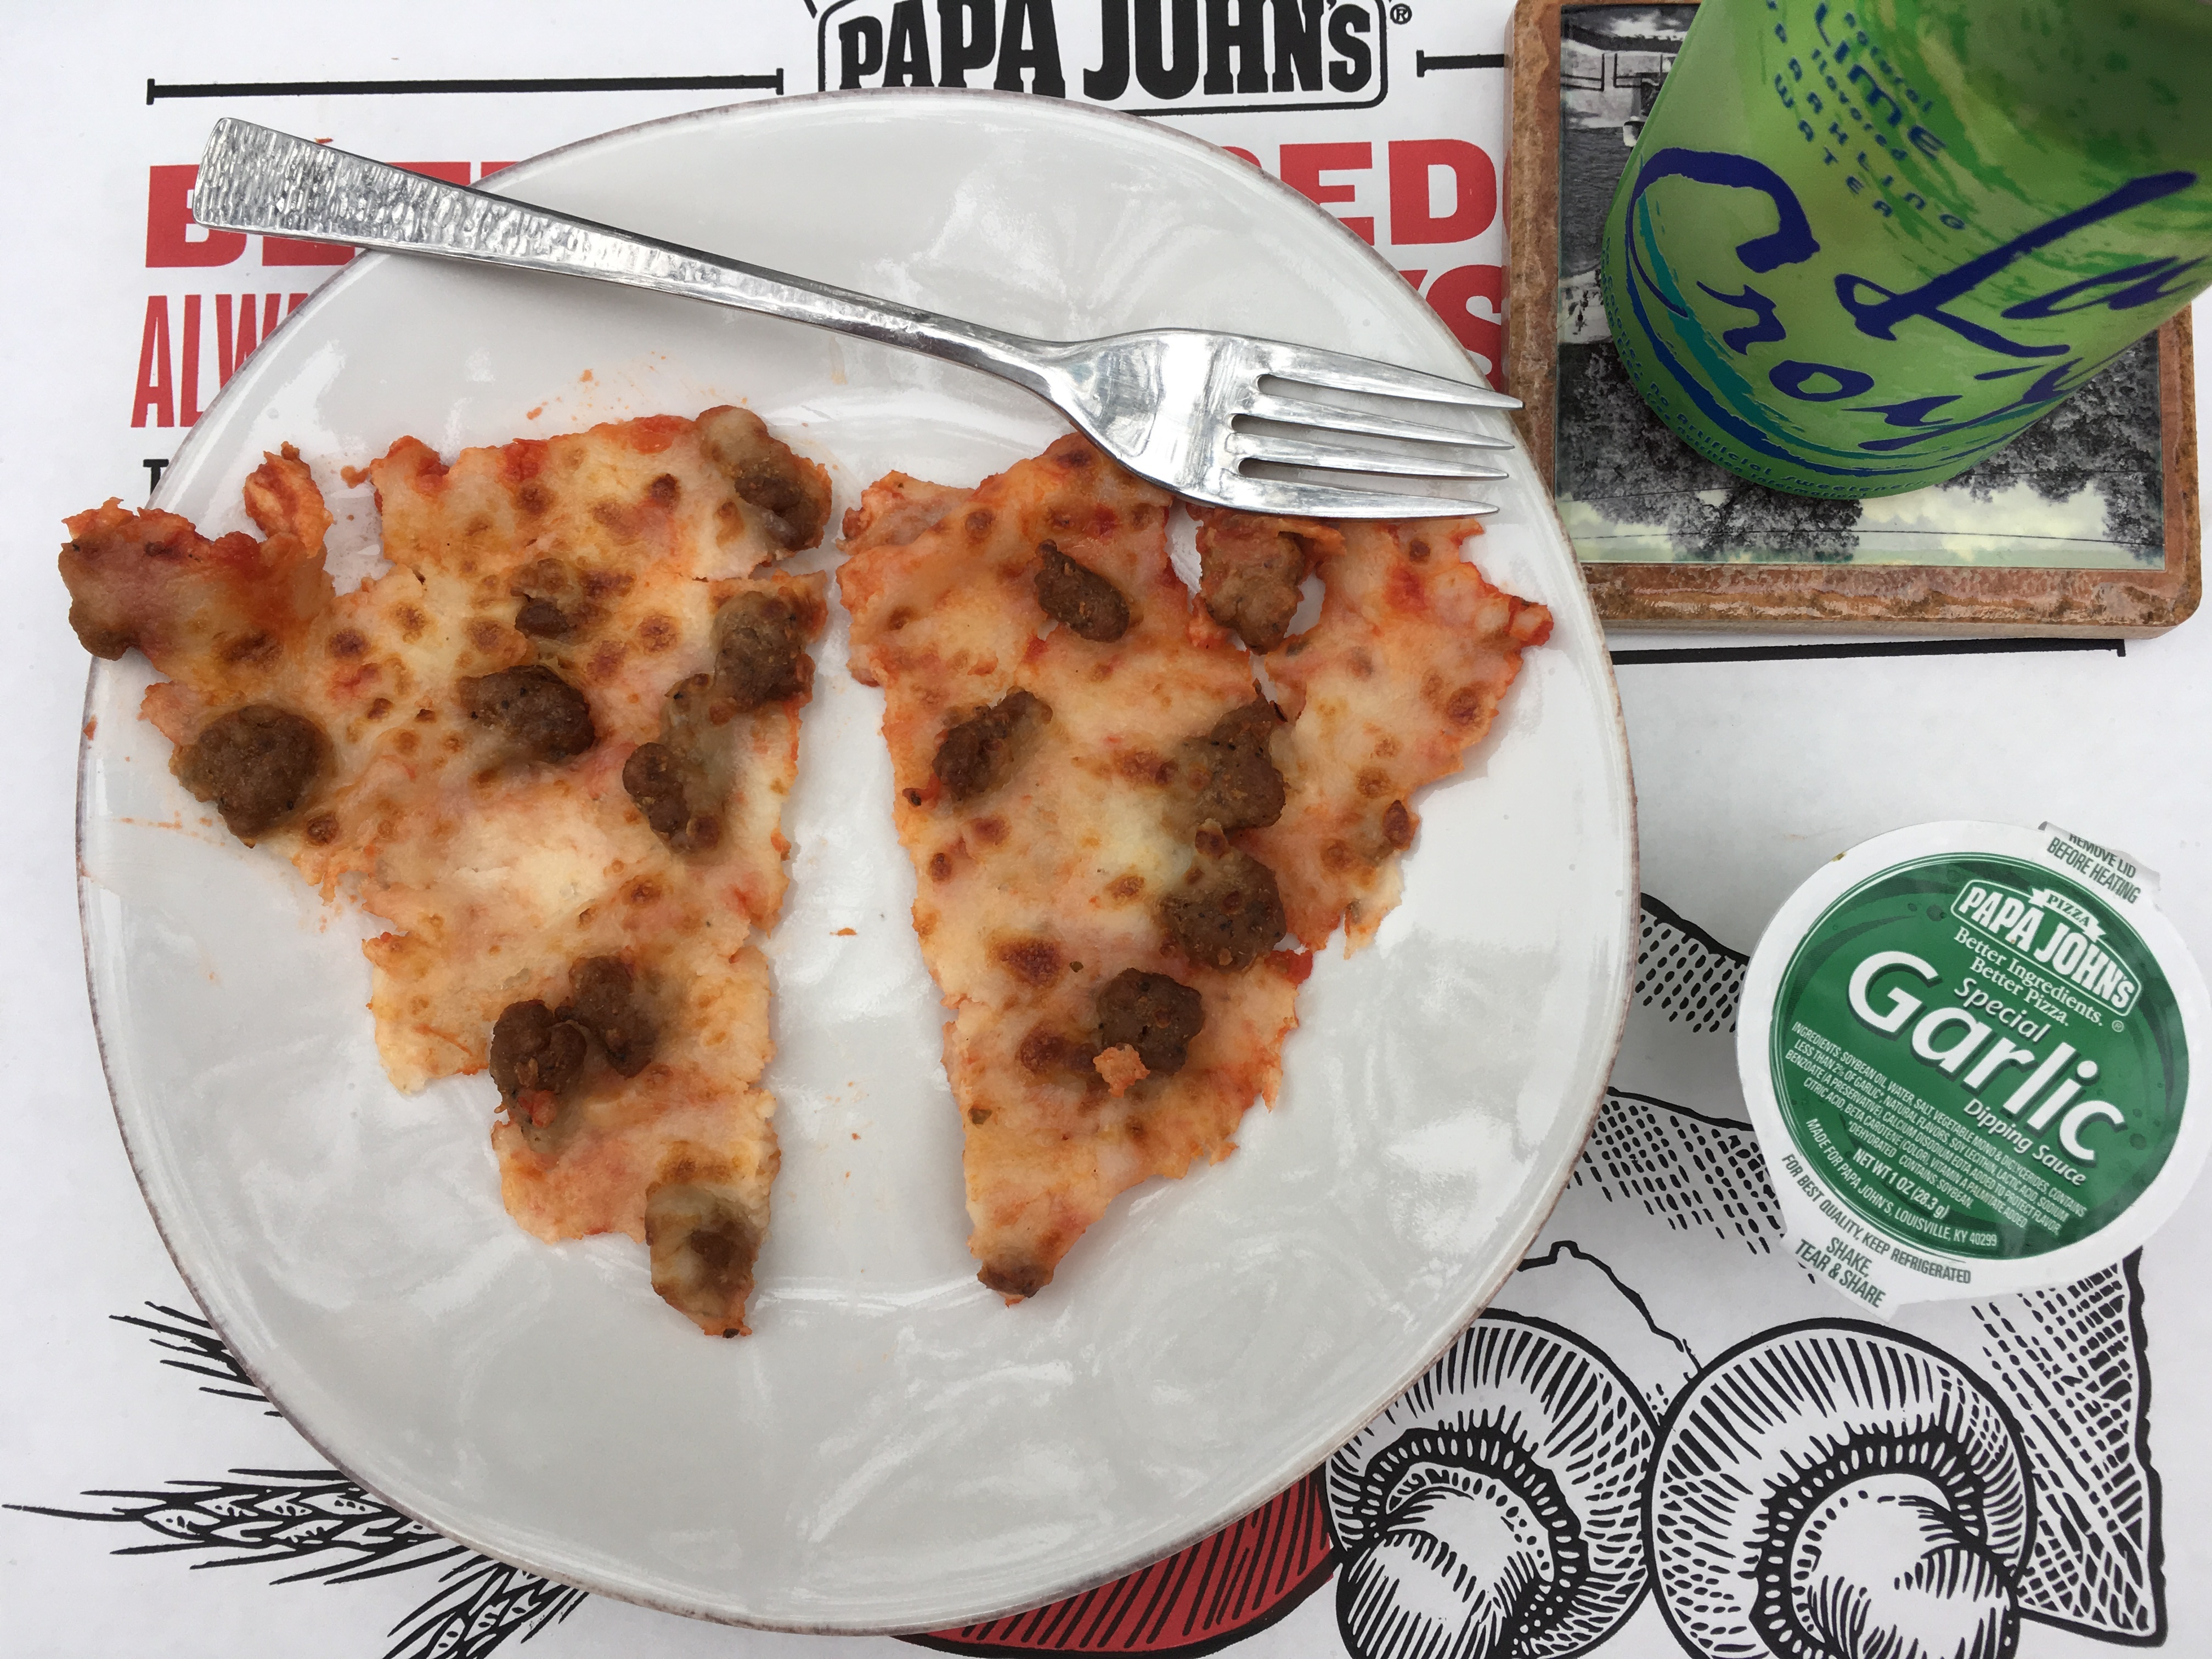 My Low Carb Papa Johns Pizza Toppings - Italian Sausage